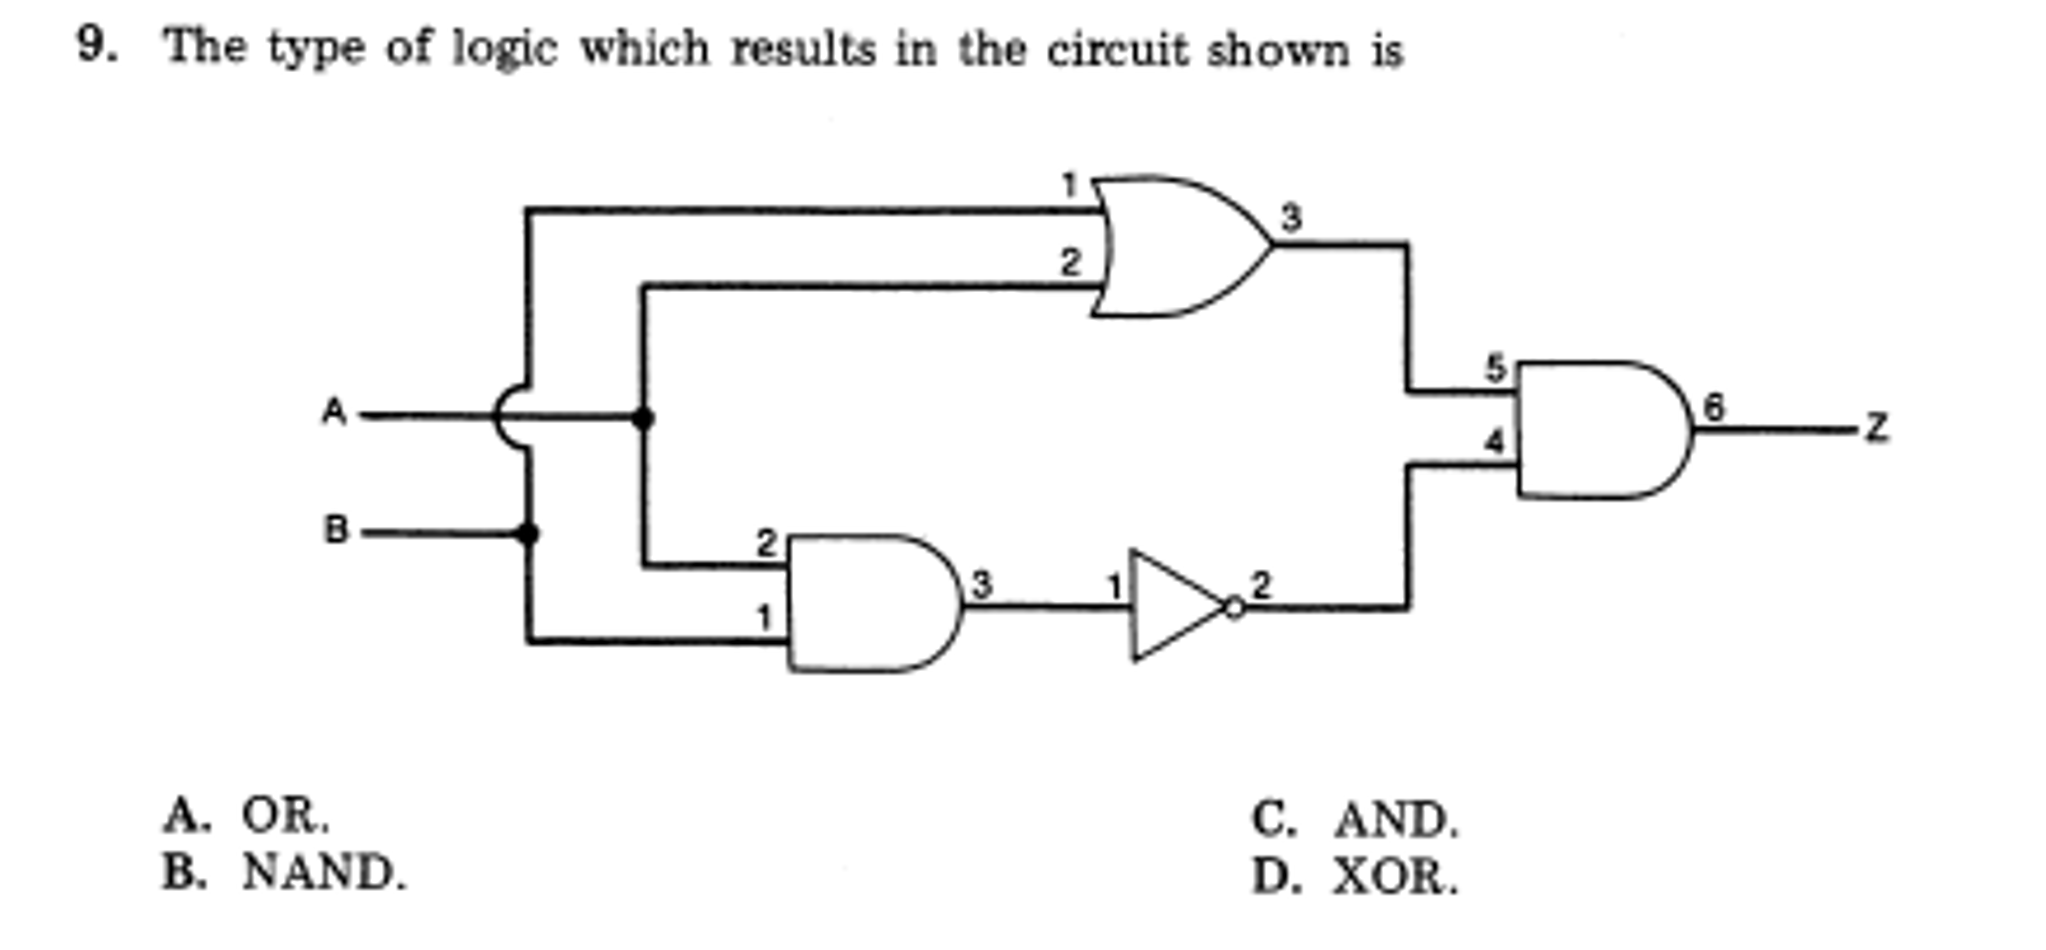 The type of logic which results in the circuit